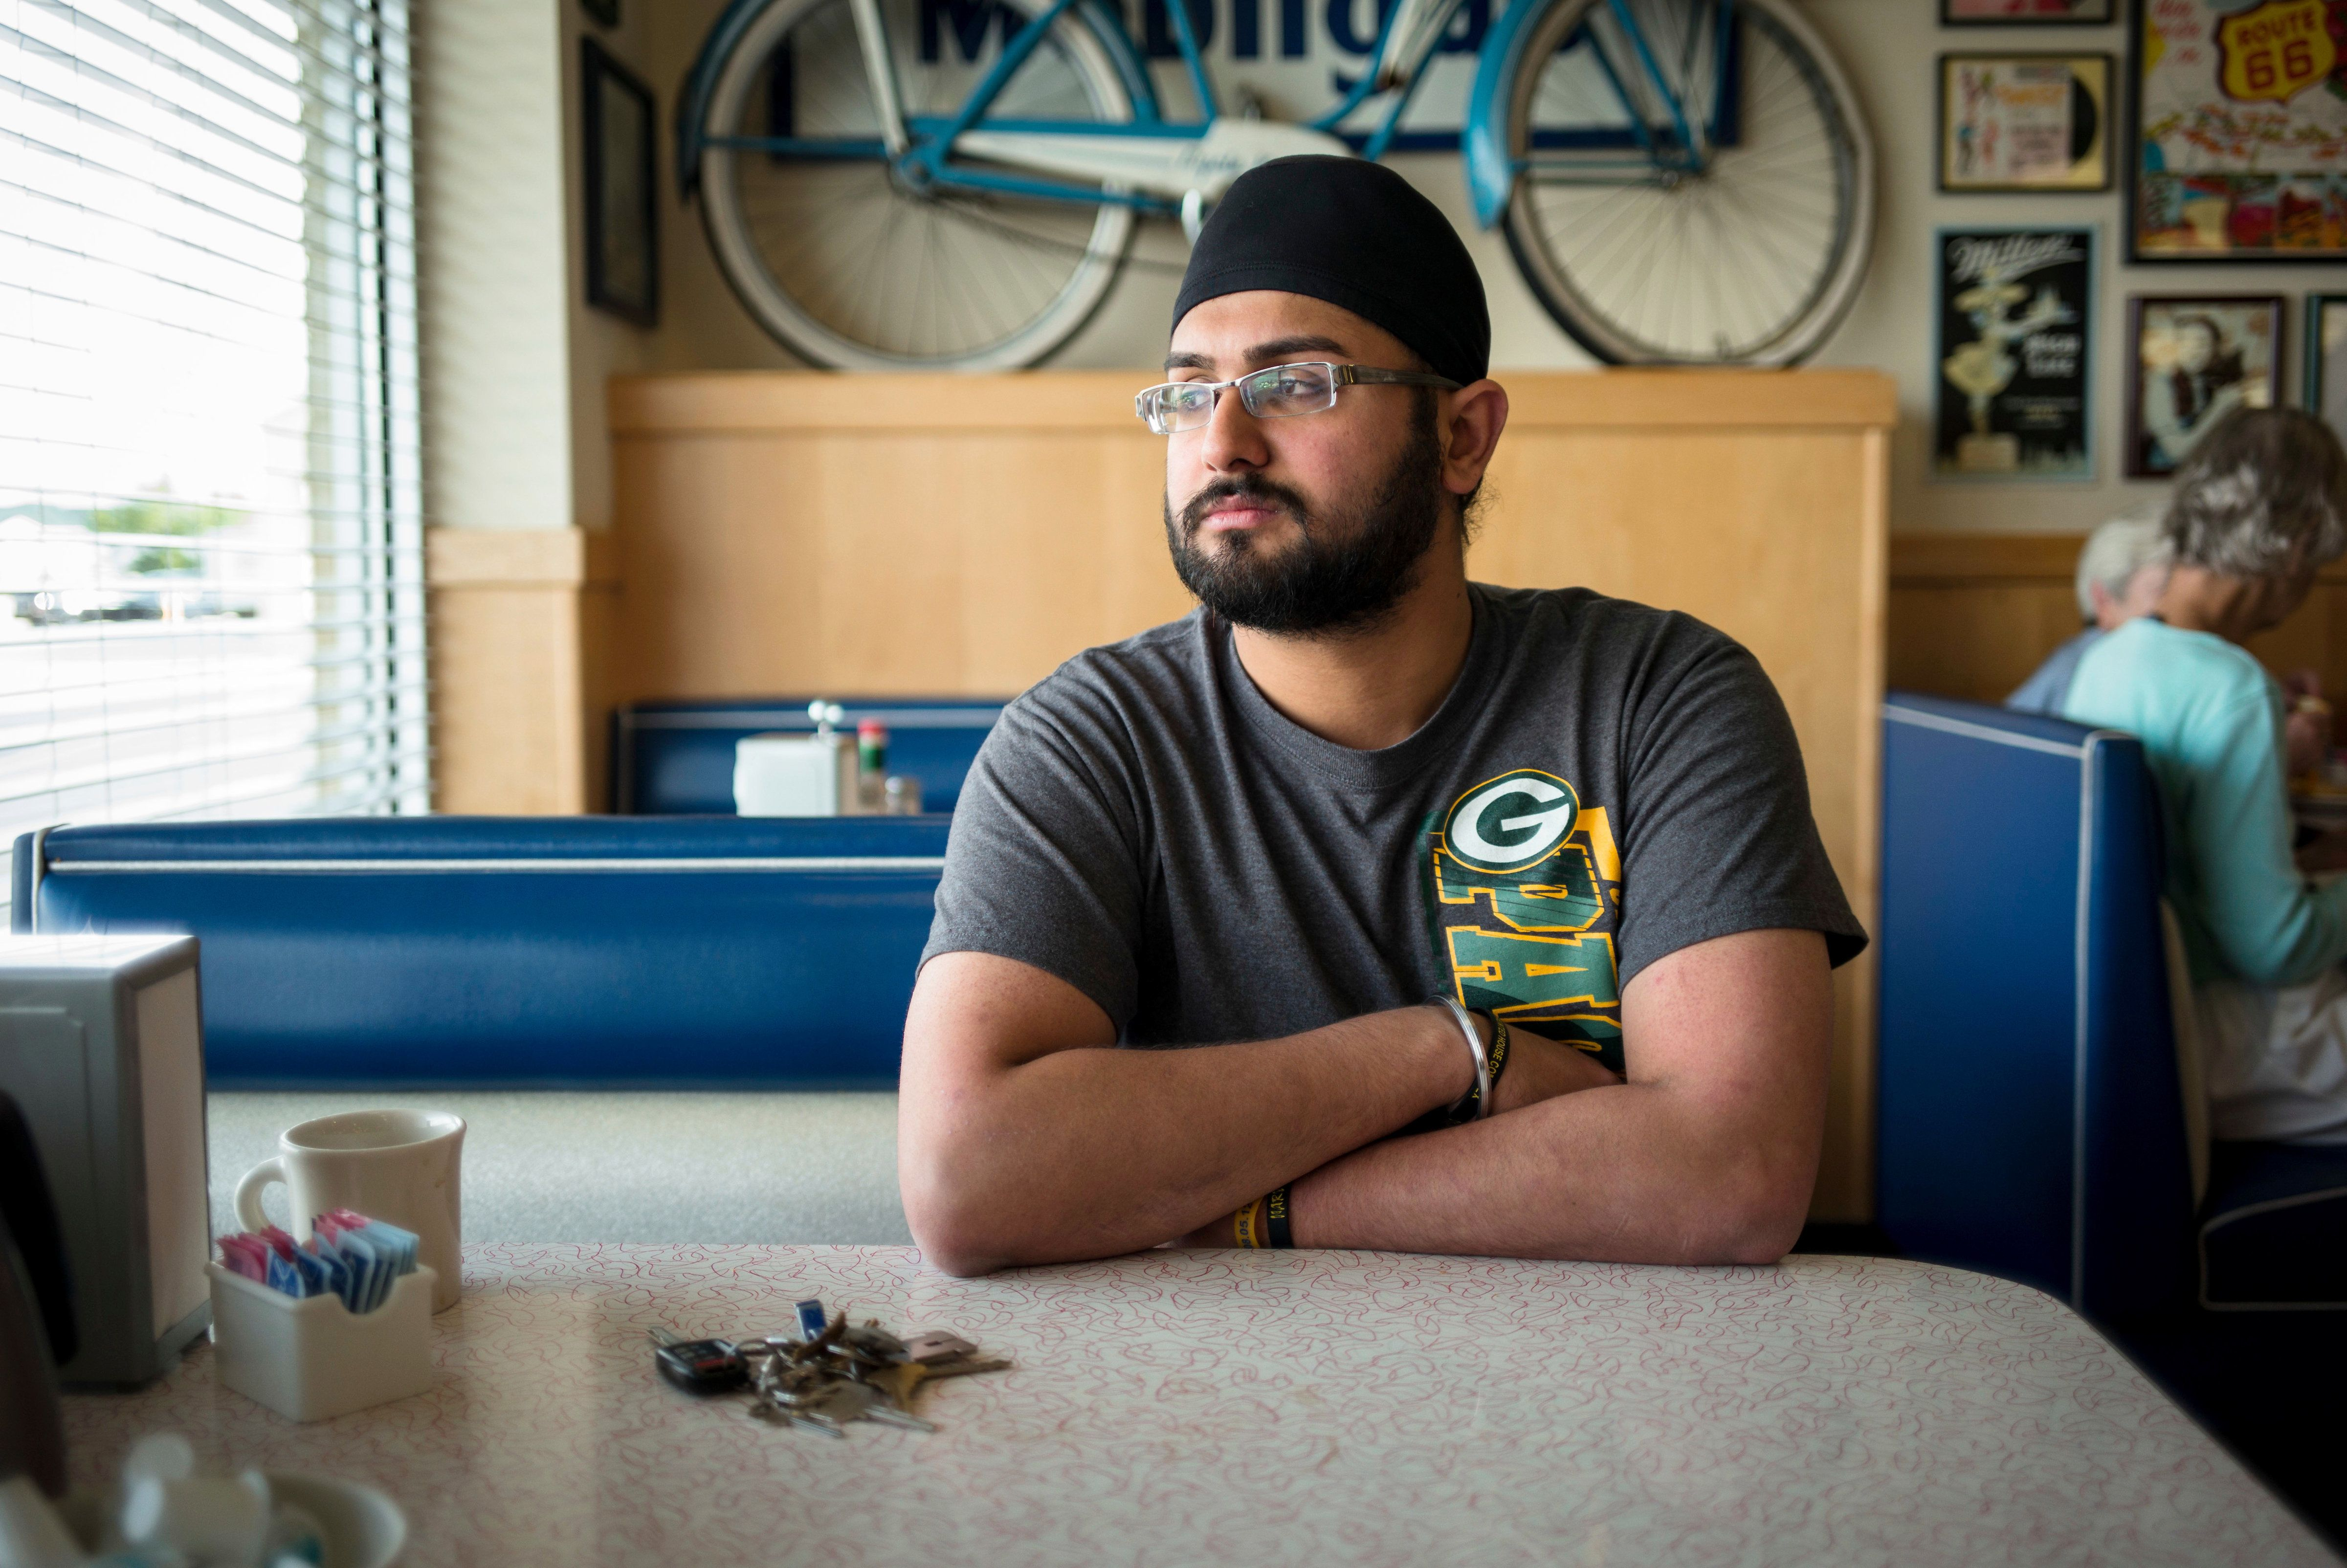 Hapreet Singh who lost his mother in the Sikh Temple massacre sits for a portrait at the Douglas Avenue Diner Friday July 28, 2017 Racine , WI .Aug 5th marks the 5 year anniversary at the Sikh Temple in Oak Creek, Wisconsin, where Wade Michael Page a know white supremacist  fatally shot six people and wounded four others before dying himself.  CREDIT: Darren Hauck for The HuffintonPost